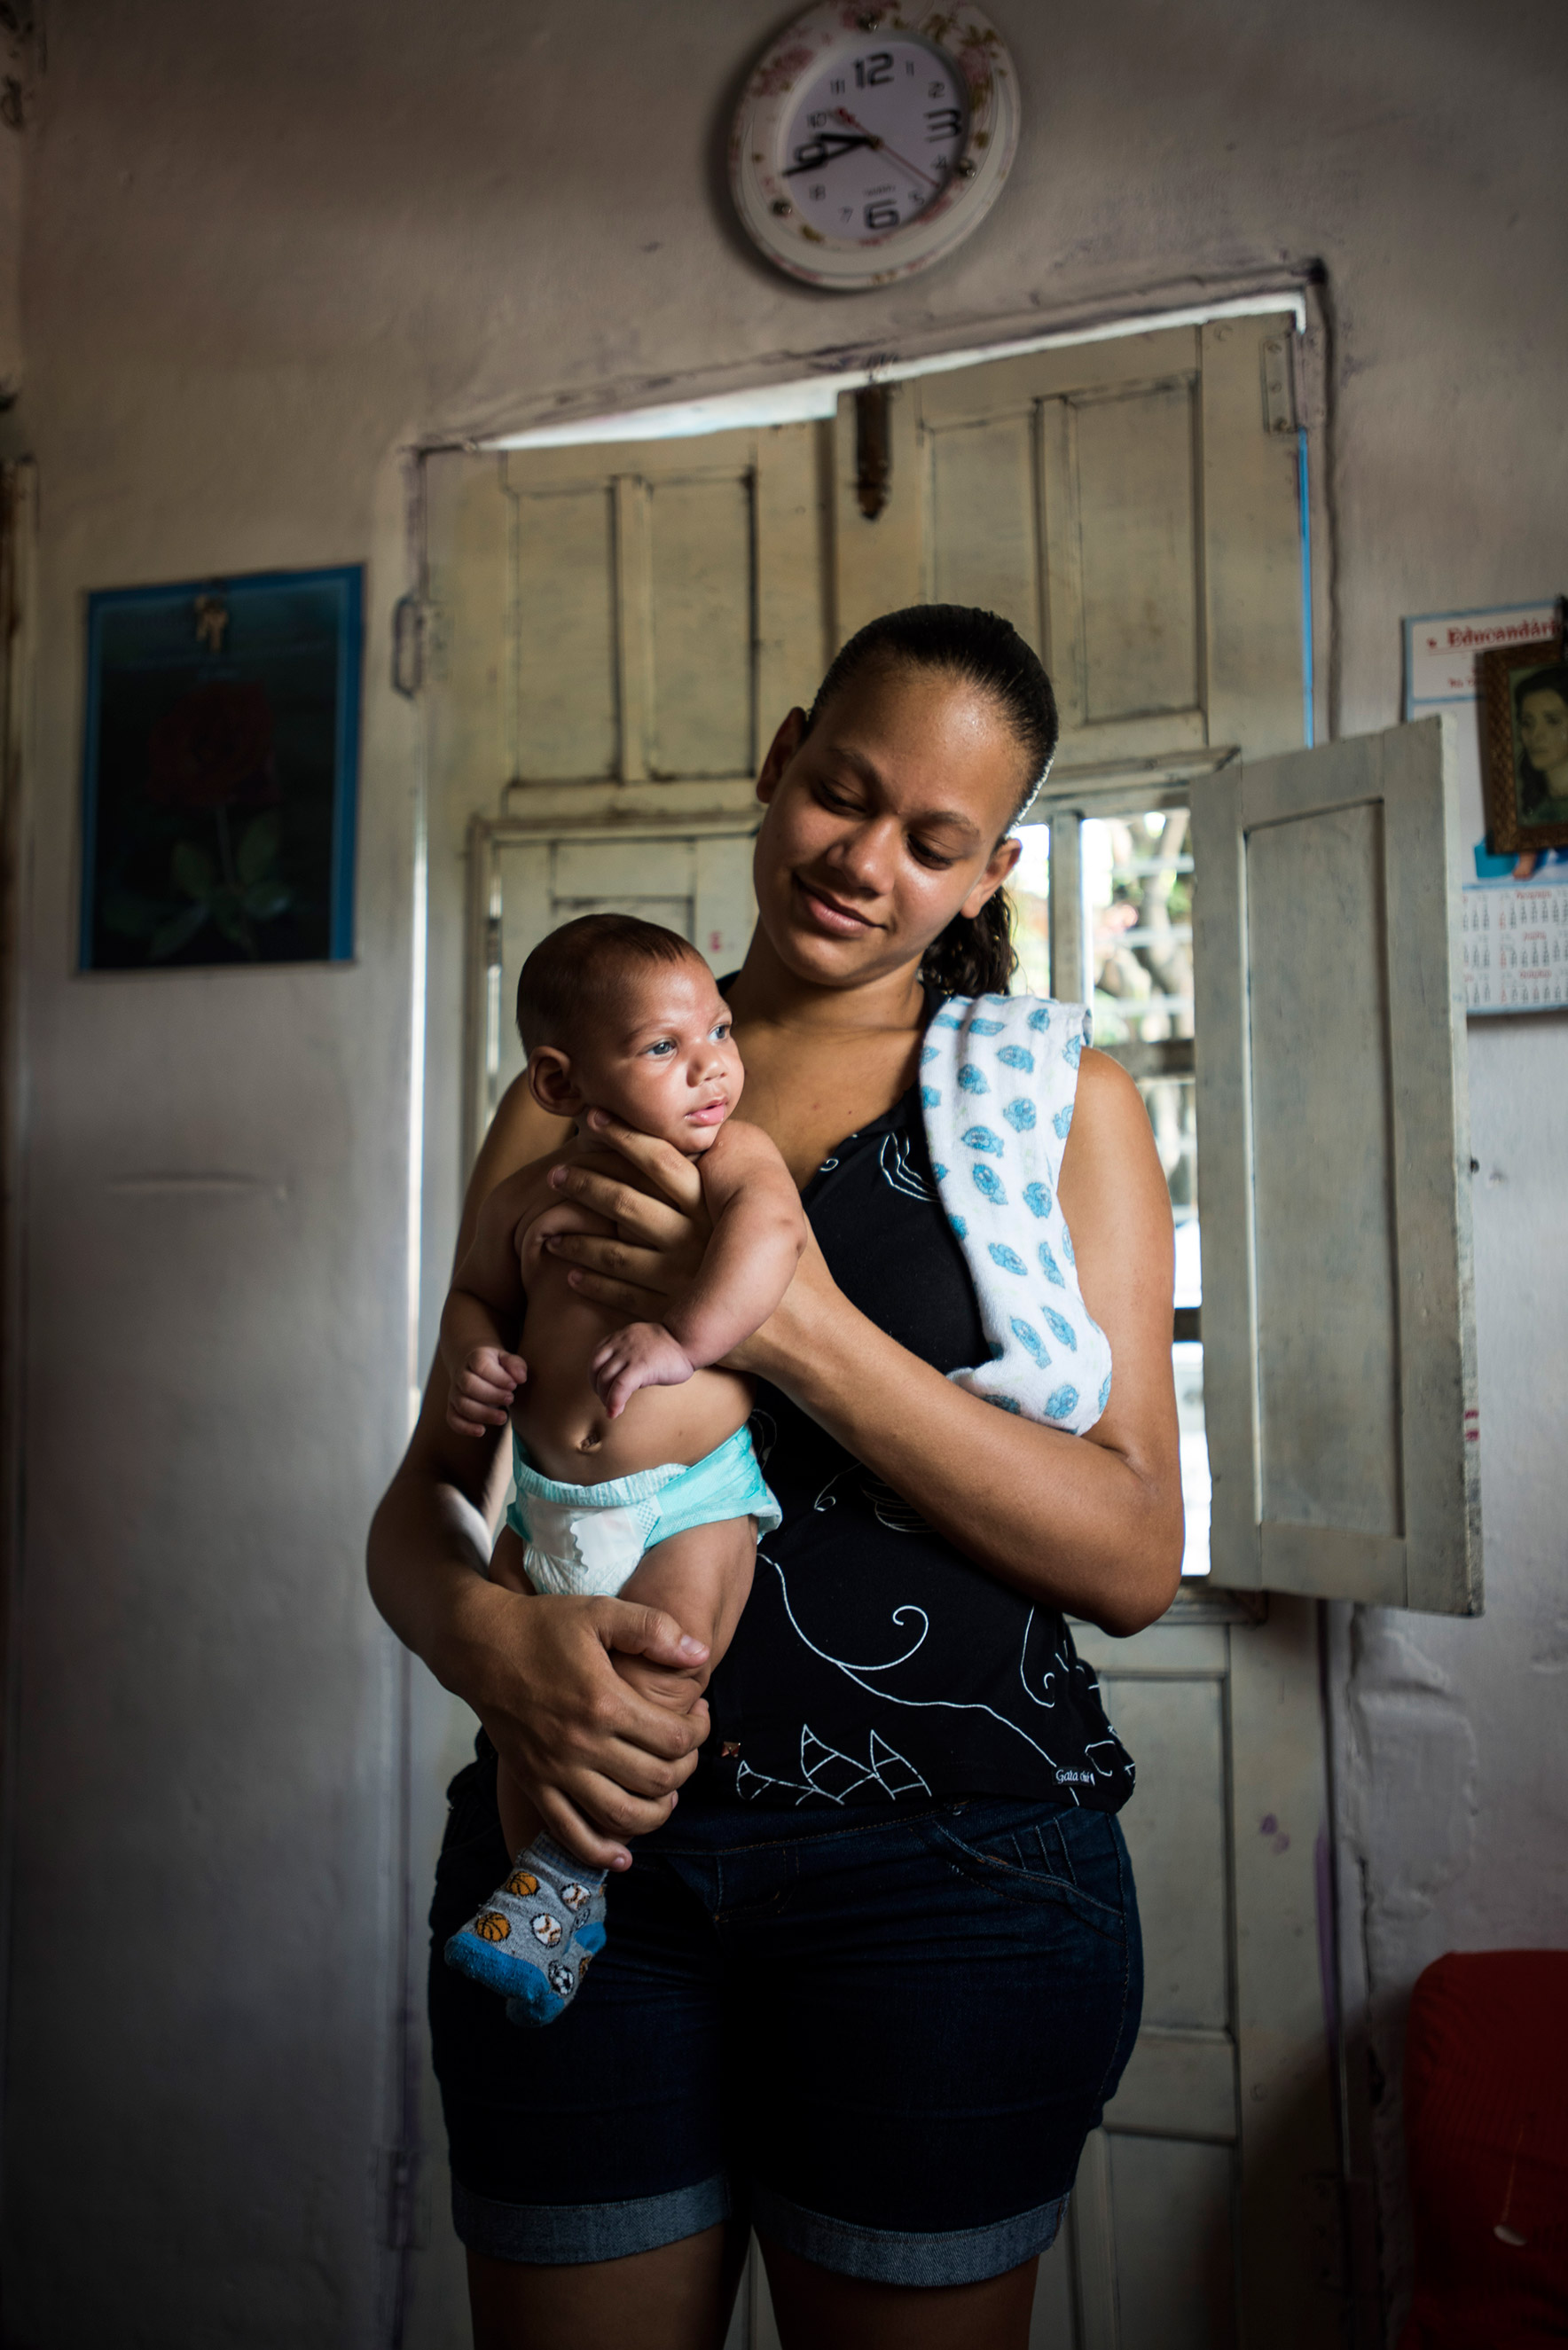 Juliana Diniz da Slva, 22, with her three-month-old son, Pedro Henrique da Silva, in her house in Nova Descoberta, a favela in the outskirts of Recife, Brazil, Feb. 2, 2016. When she was seven months pregnant, doctors discovered the baby had the rare birth defect.